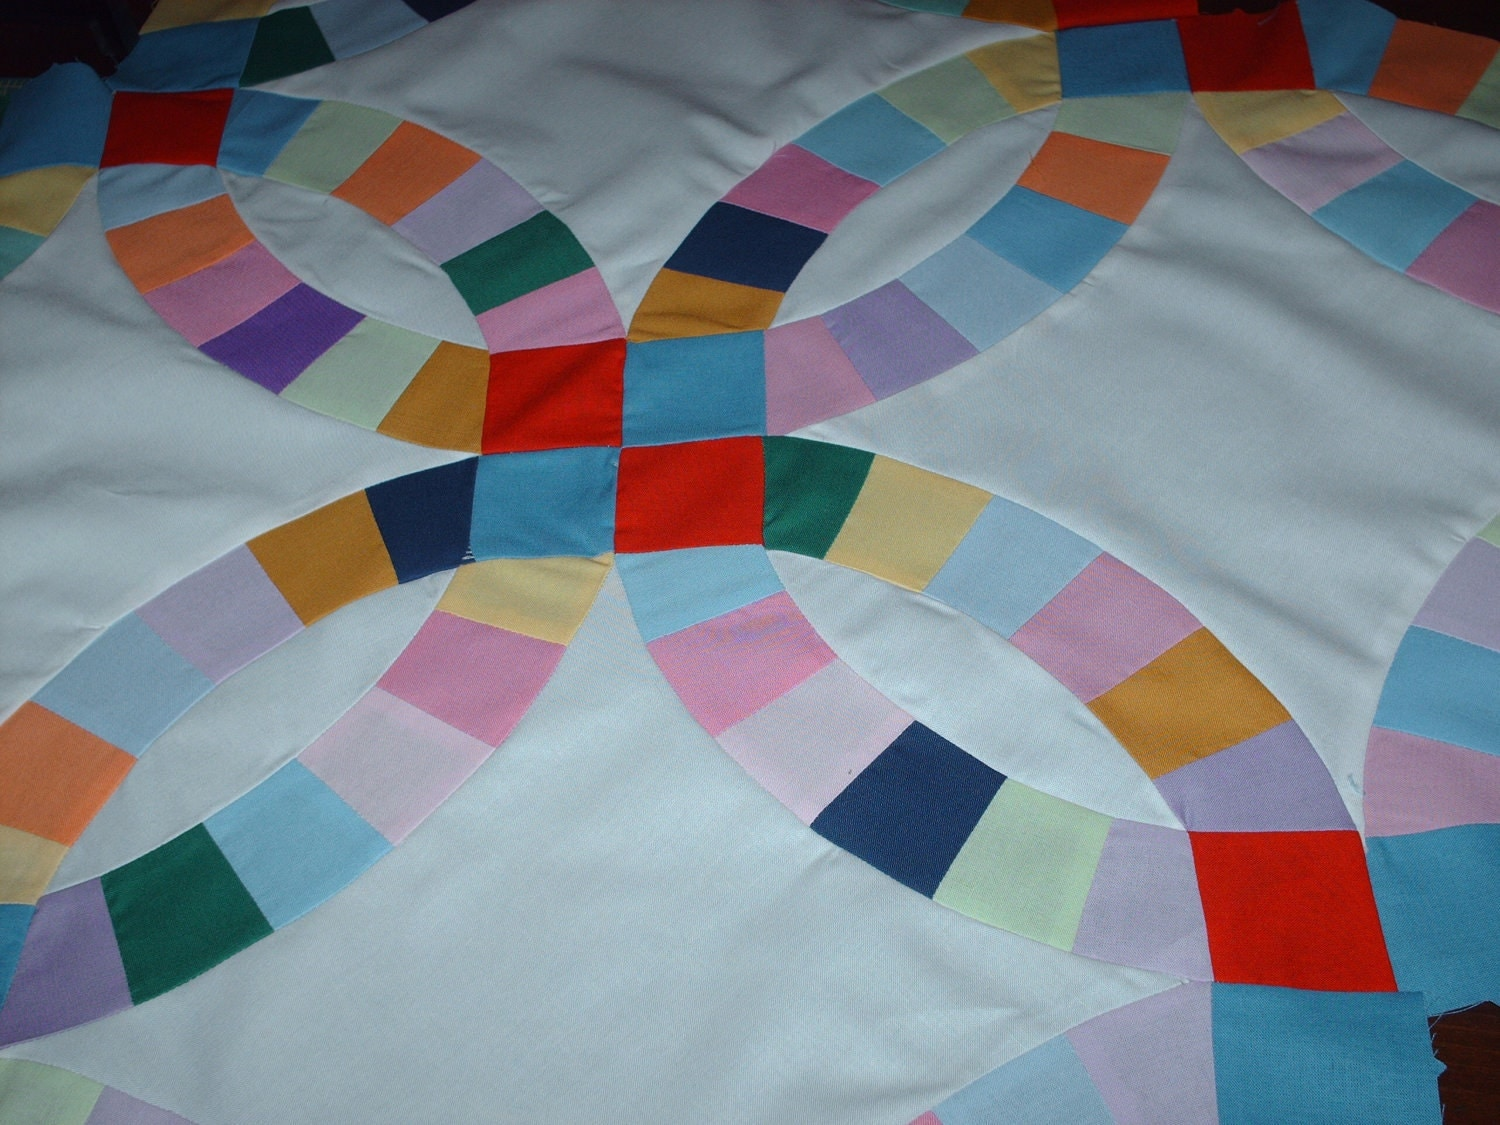 wedding ring quilt top amish style